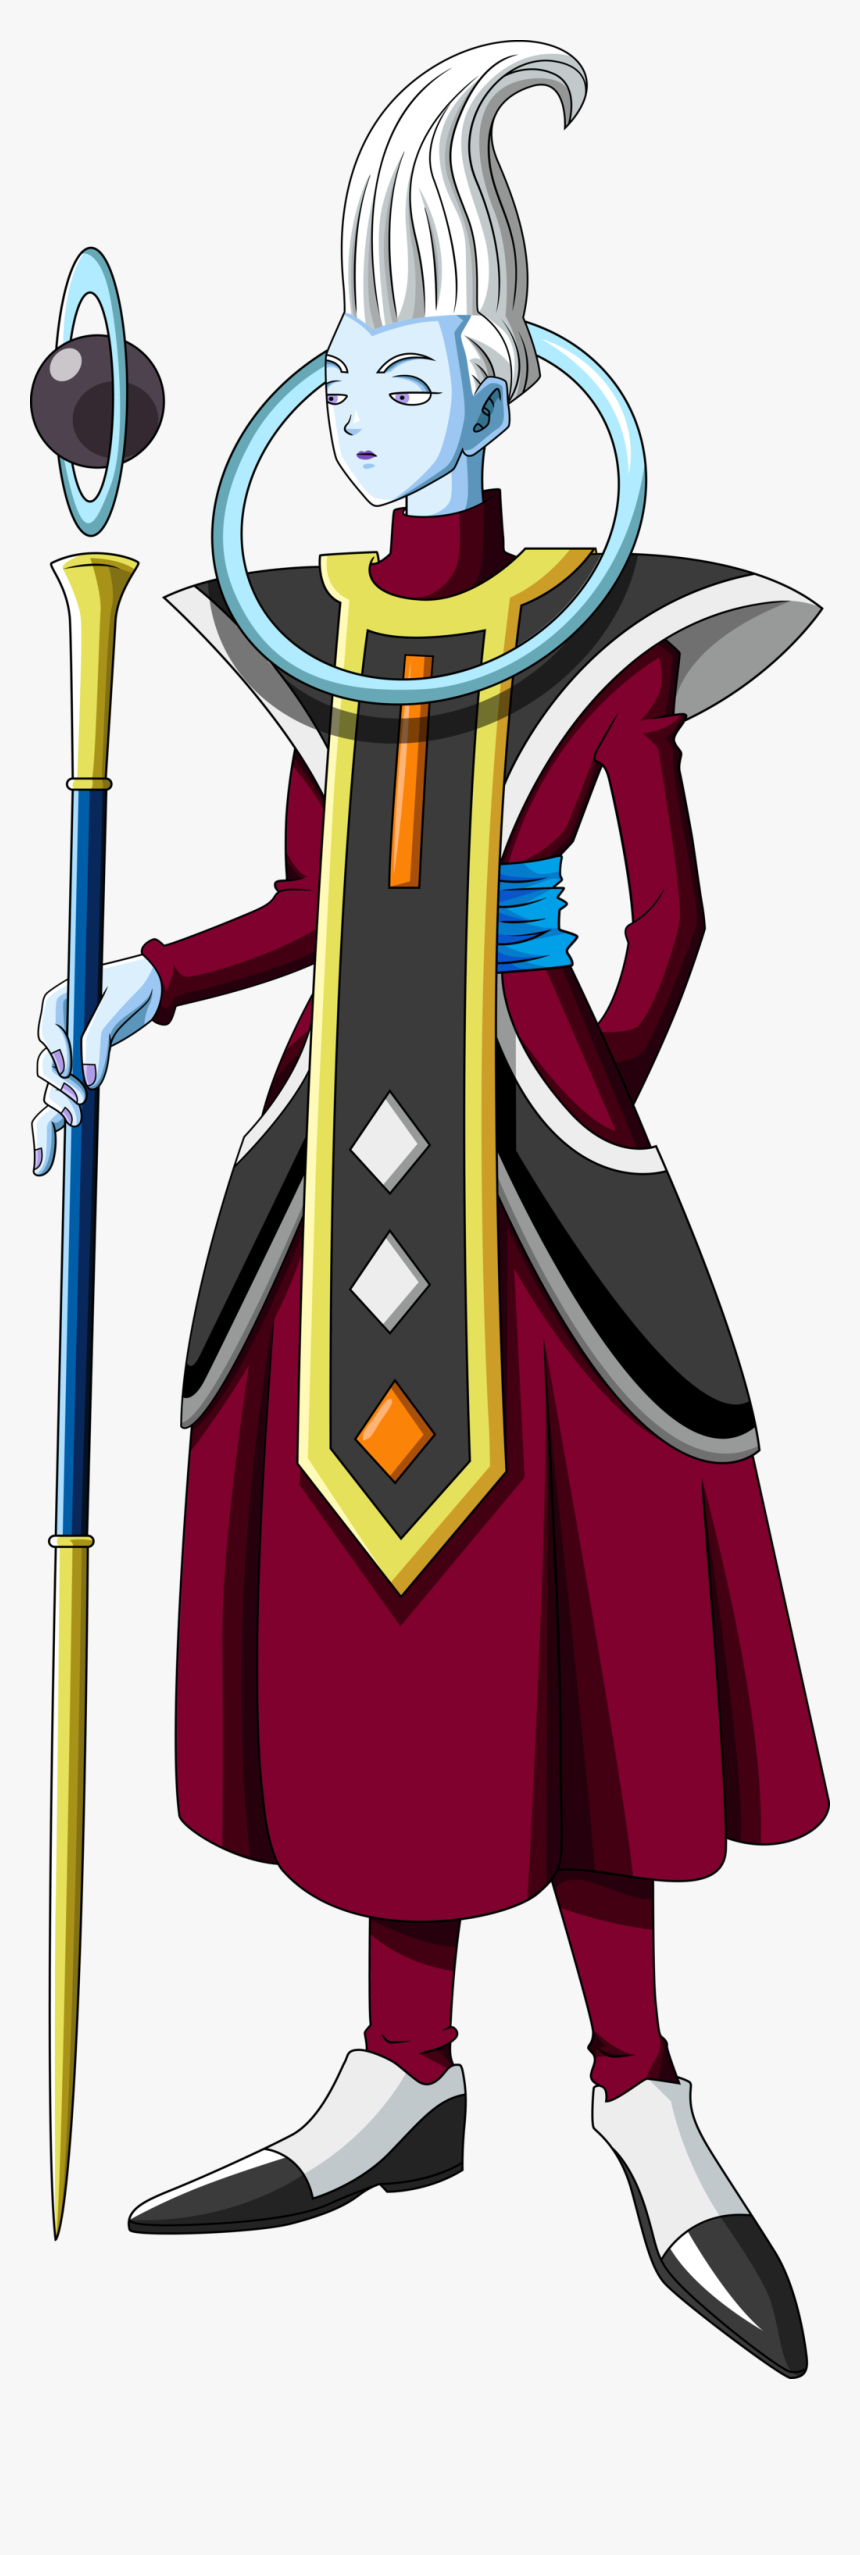 Thumb Image - Whis Do Dragon Ball Super, HD Png Download, Free Download